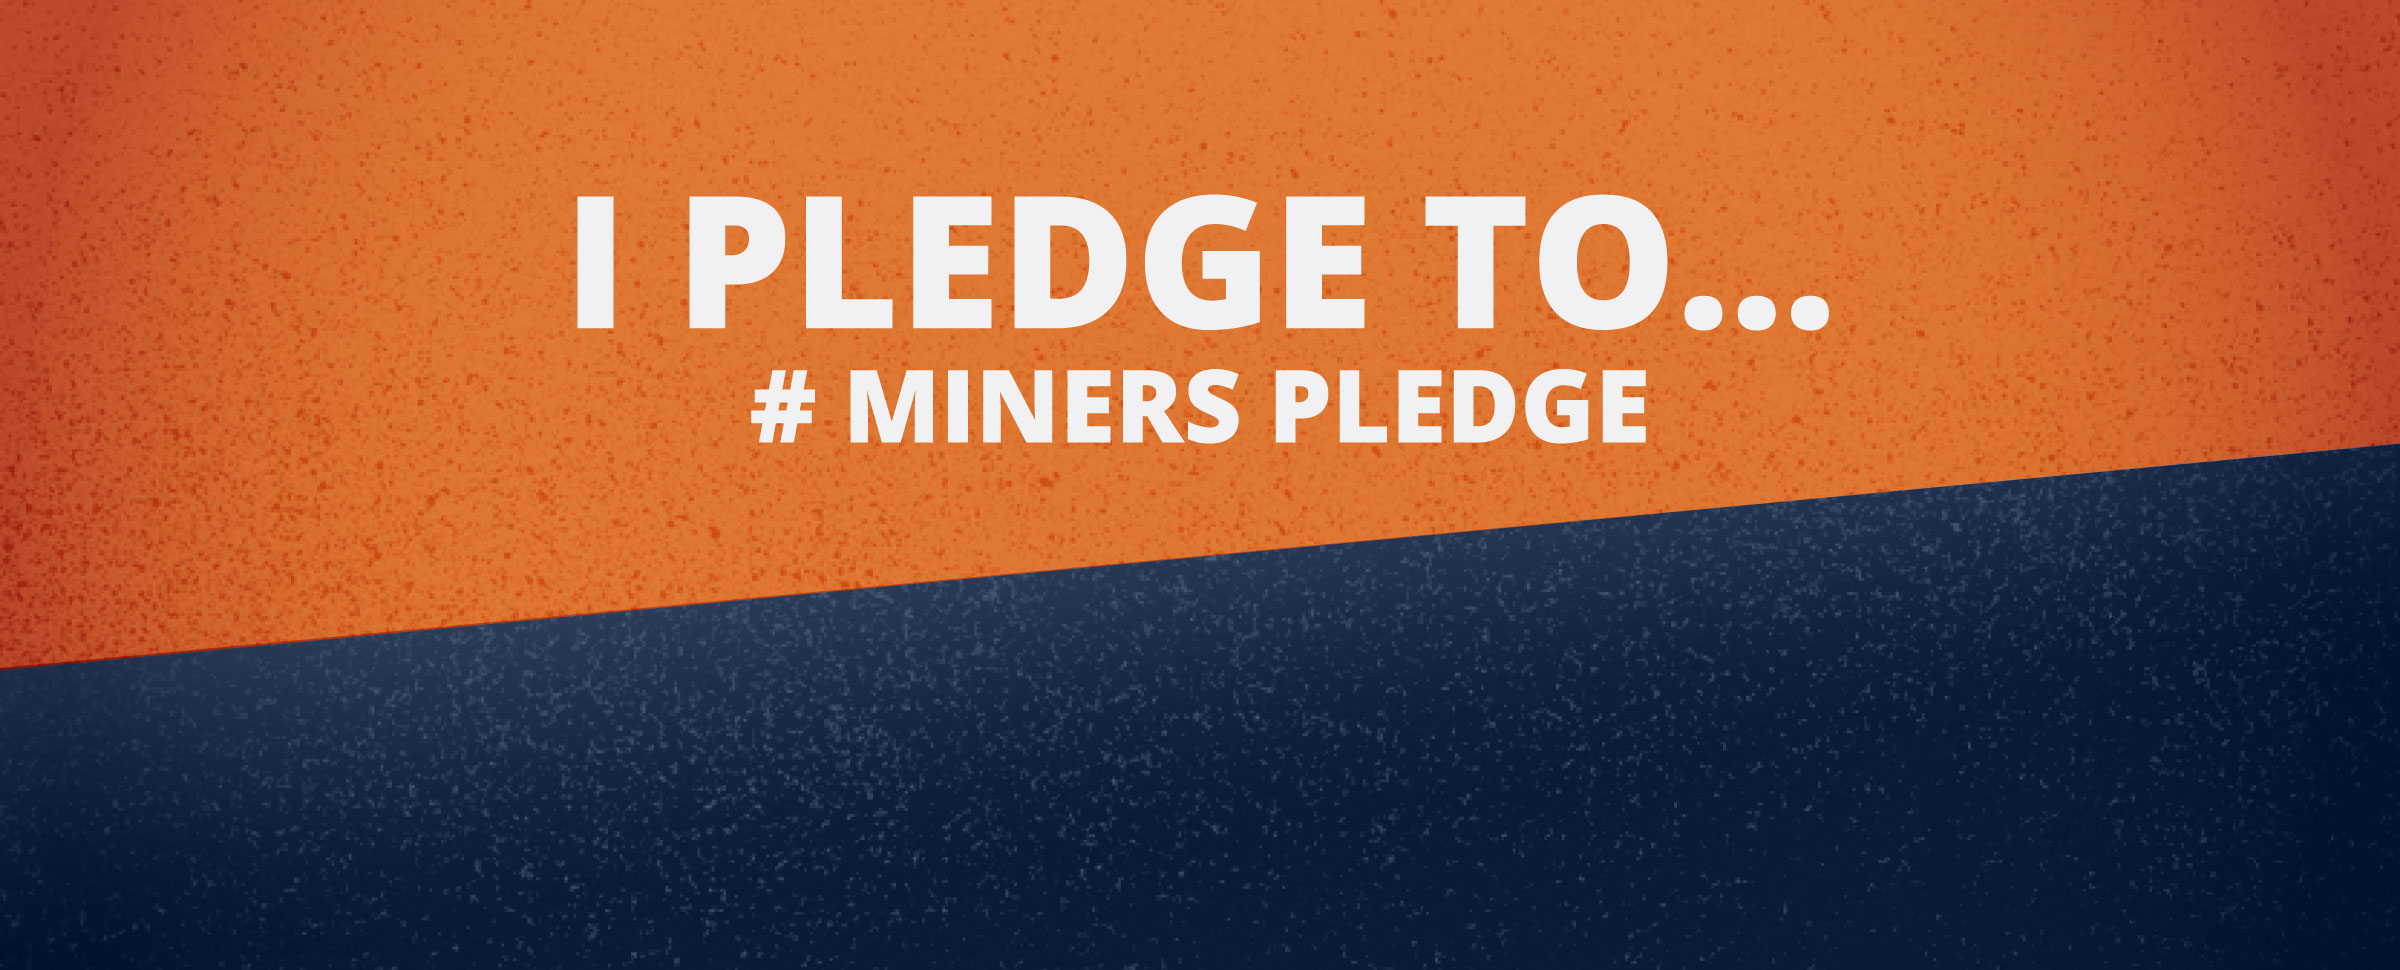 Protect Yourself and Others by Taking the Miners Pledge